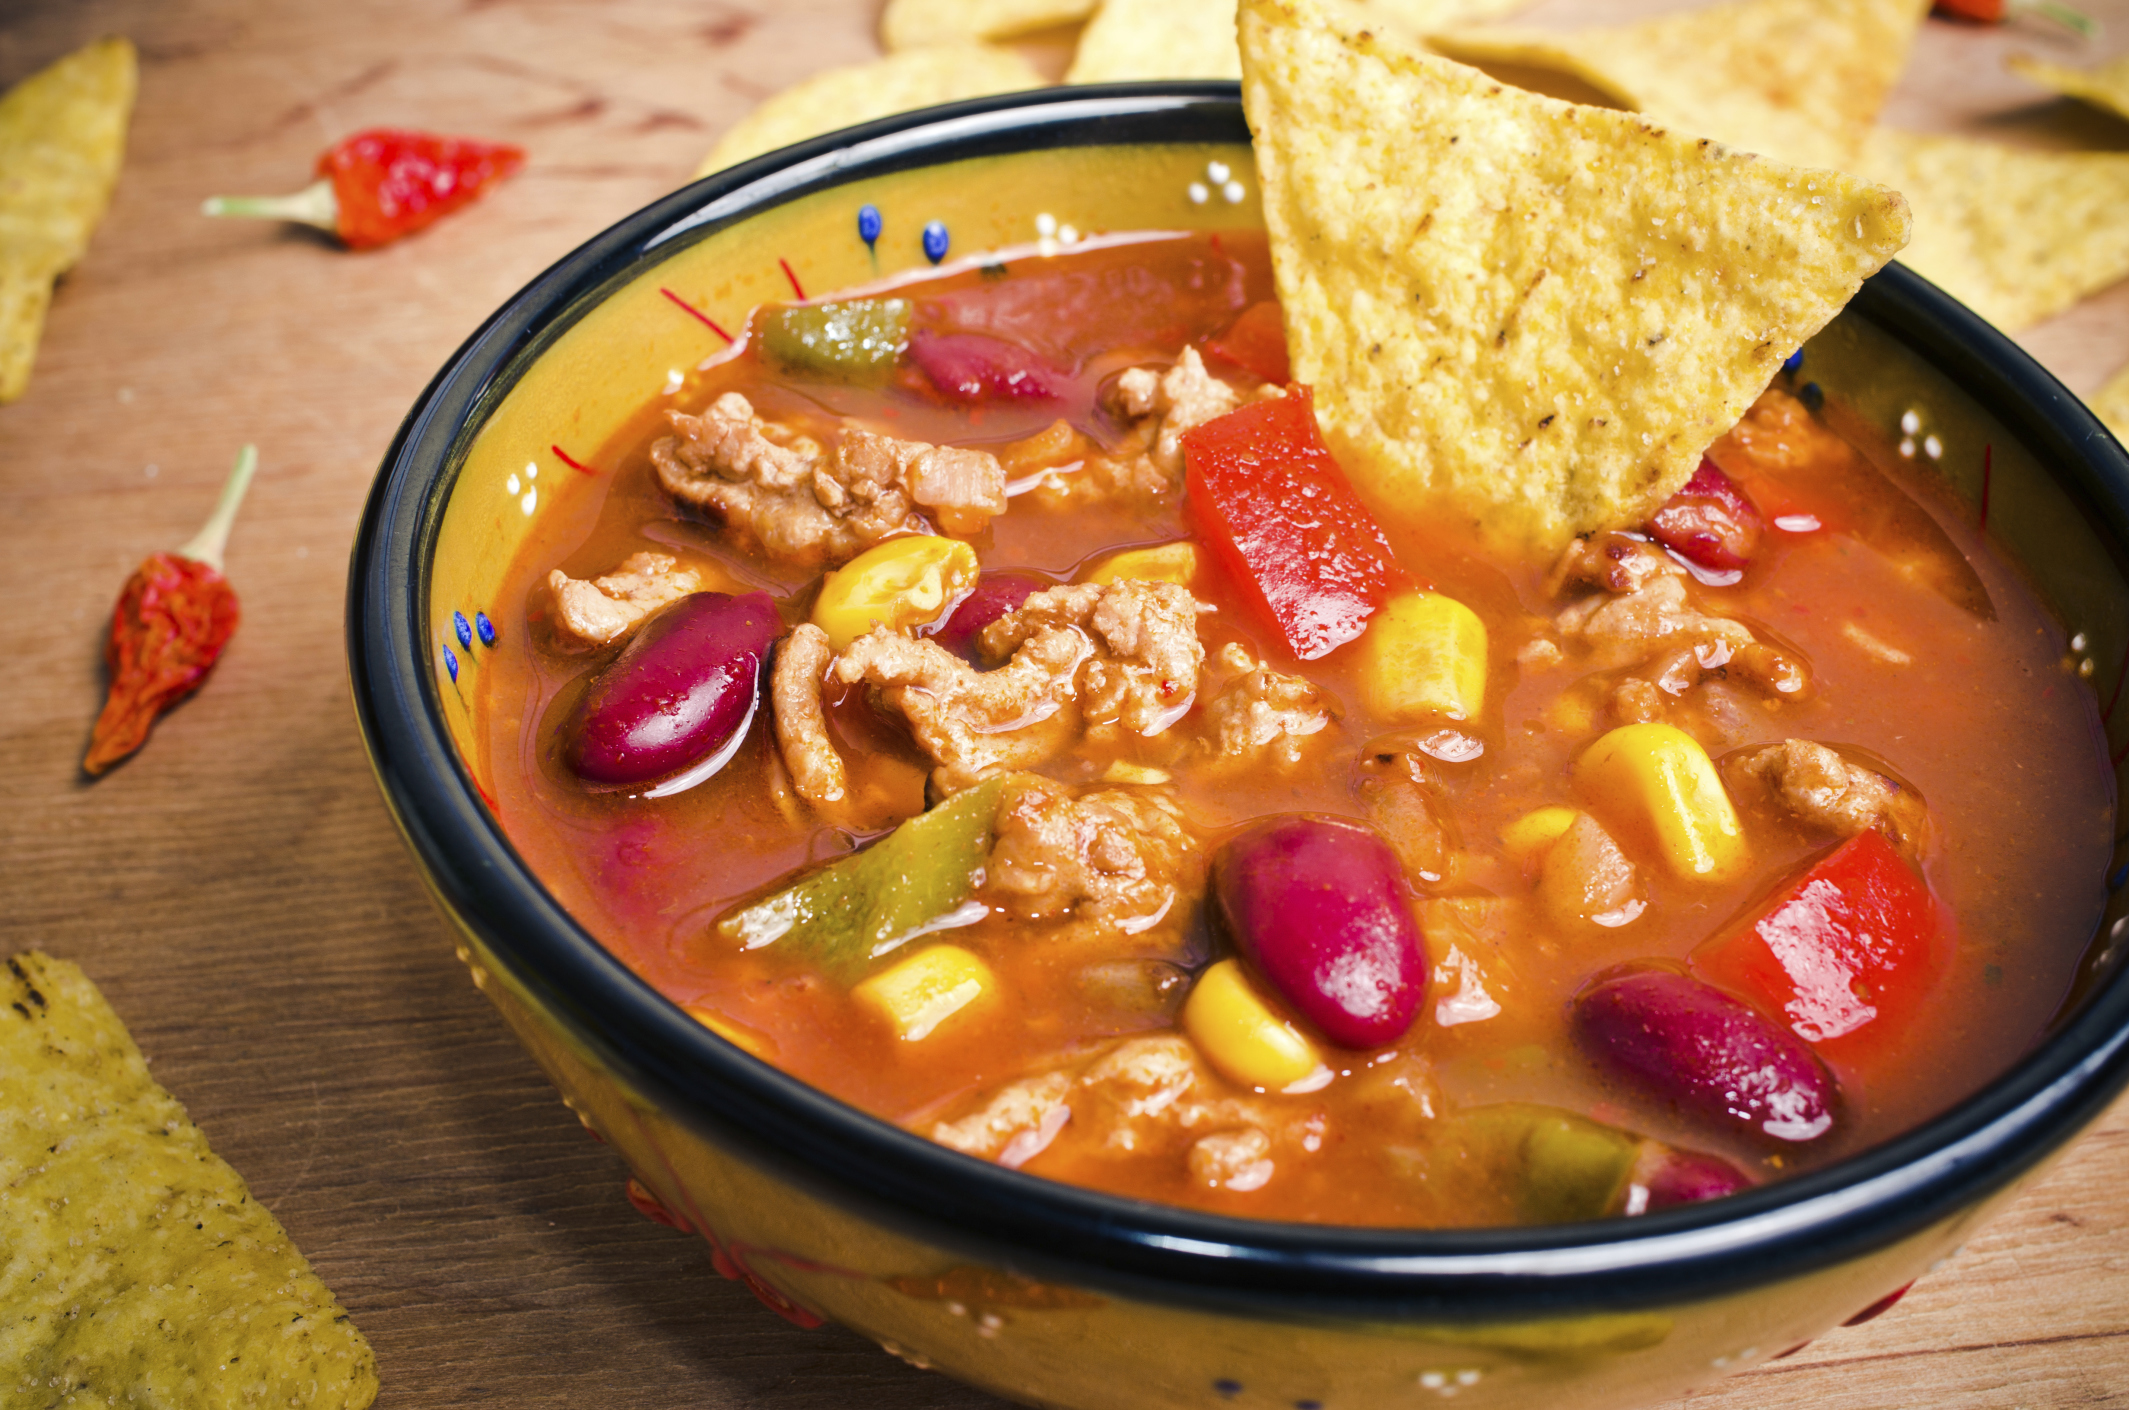 What Is a Low Calorie Mexican Food Option?